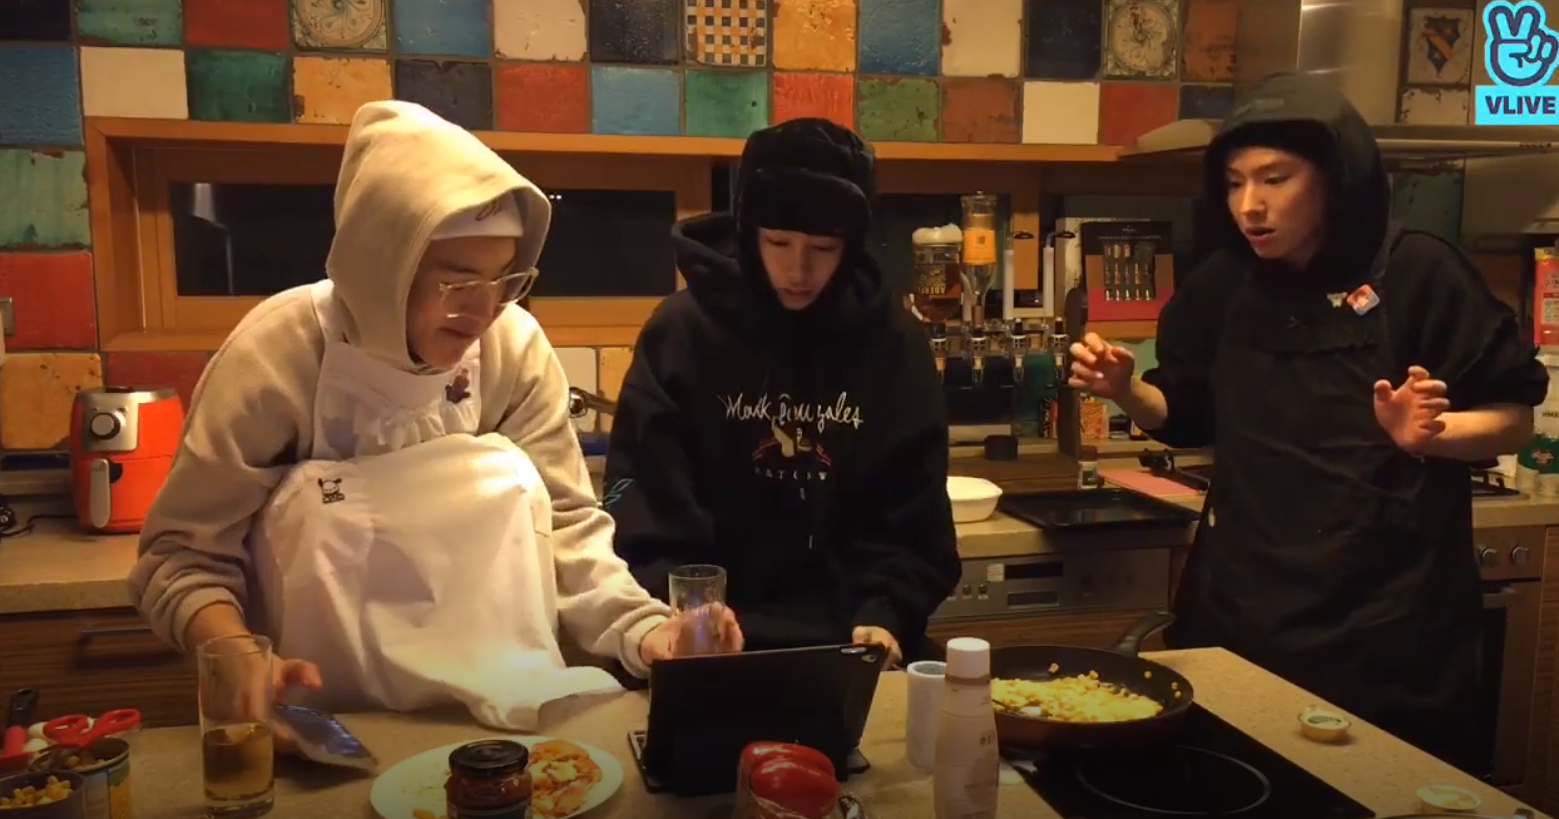 4 Moments That Turned MONSTA X's Live Cooking Show Into A Comedy